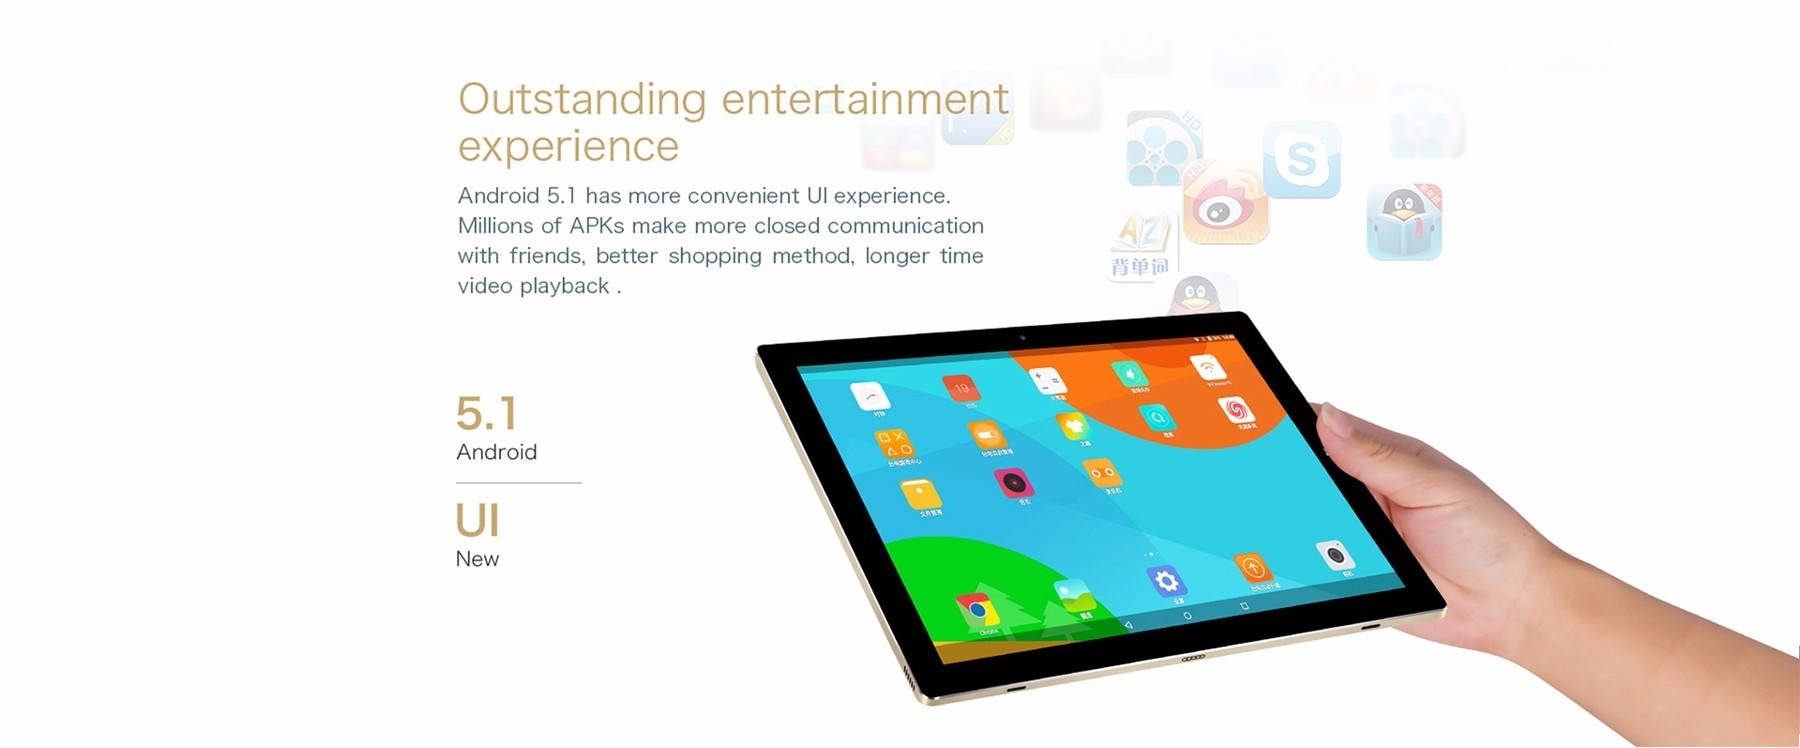 Teclast Tbook 10 S 2 in 1 Tablet PC 10.1 inch Windows 10 + Android 5.1 IPS Screen Intel Cherry Trail X5 Z8350 64bit Quad Core 1.44GHz 4GB RAM 64GB ROM Bluetooth 4.0